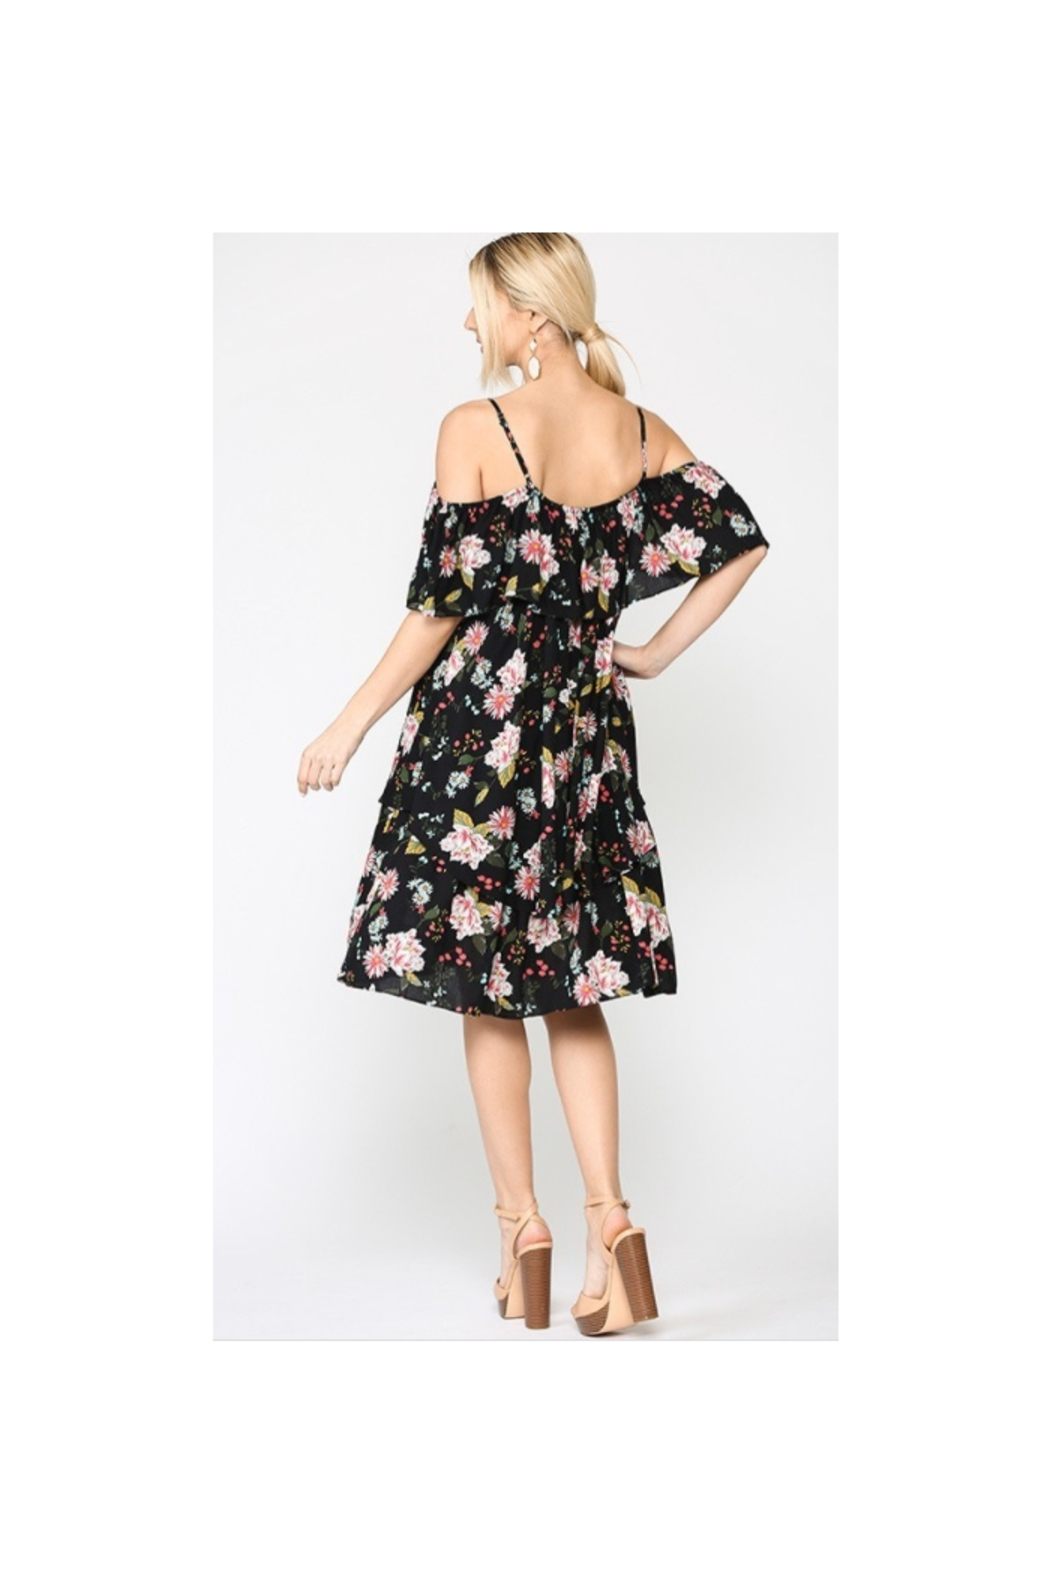 GiGiO Floral Cold Shoulder Ruffle Layered Dress - Front Full Image